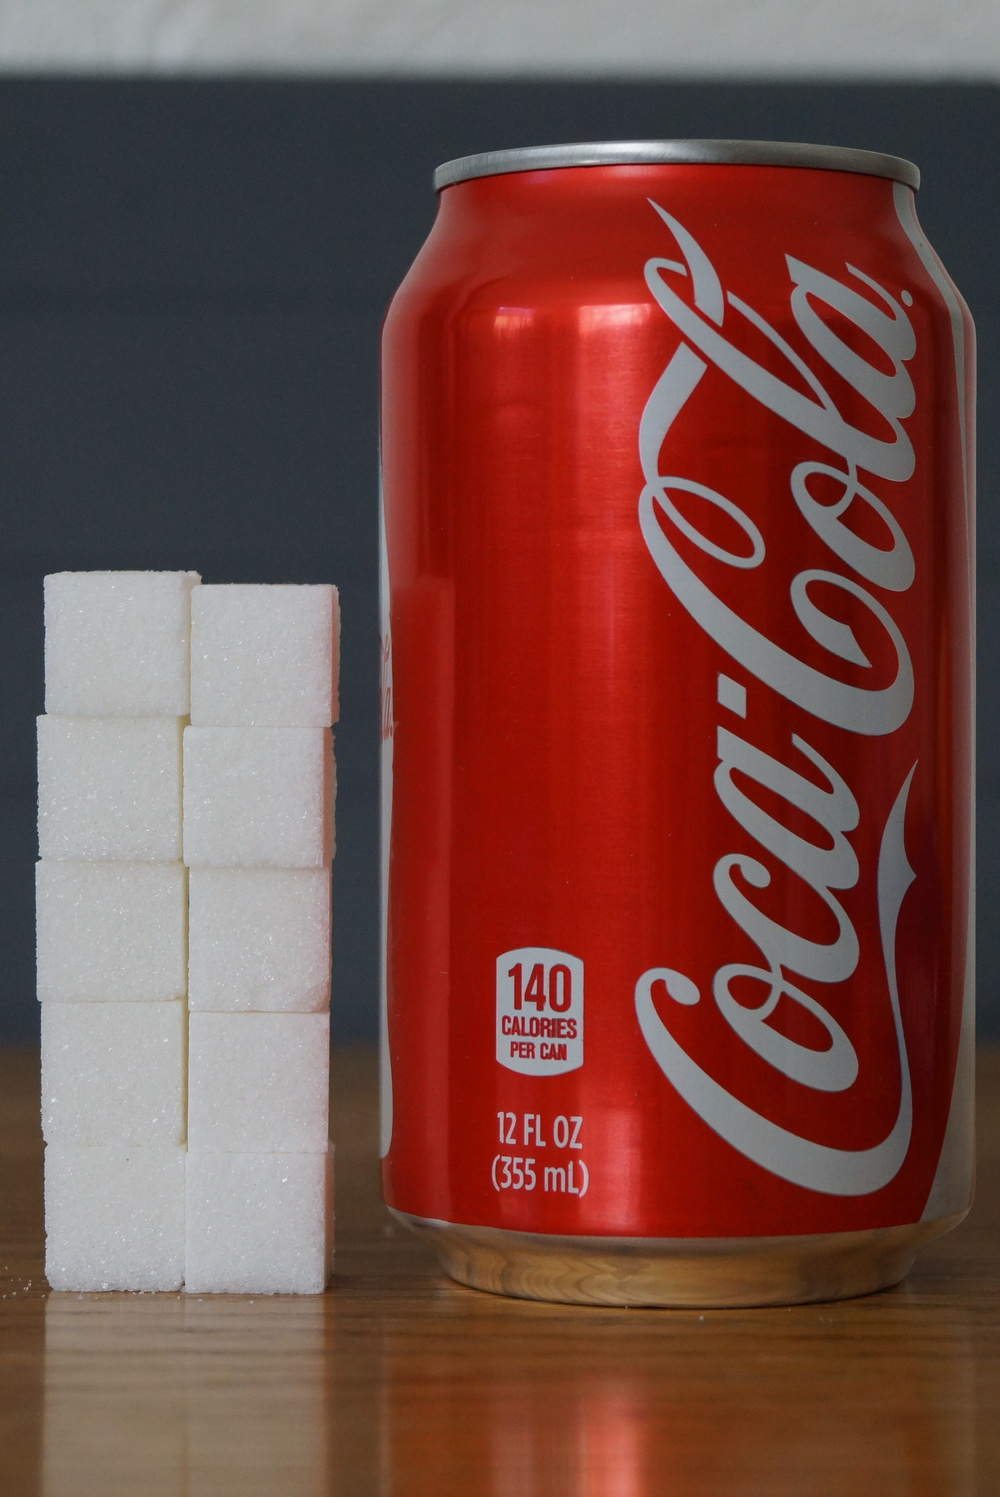 Amount of Sugar in One 12 oz can of Coca Cola